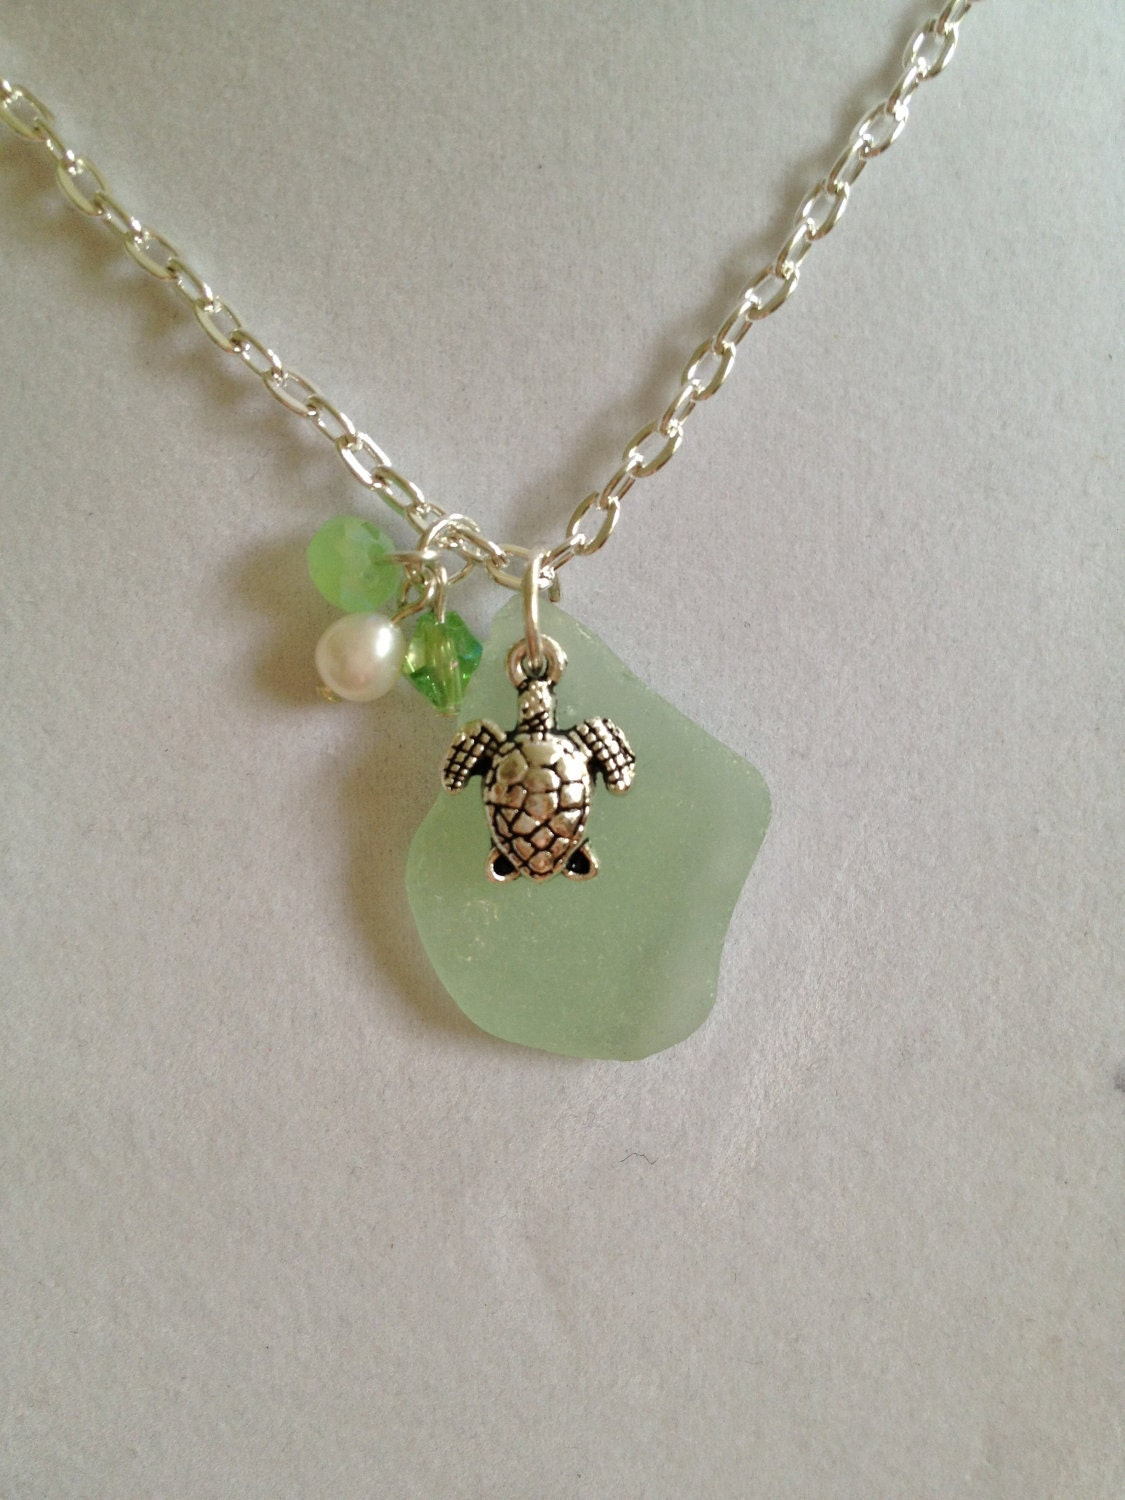 items similar to sea glass necklace on etsy